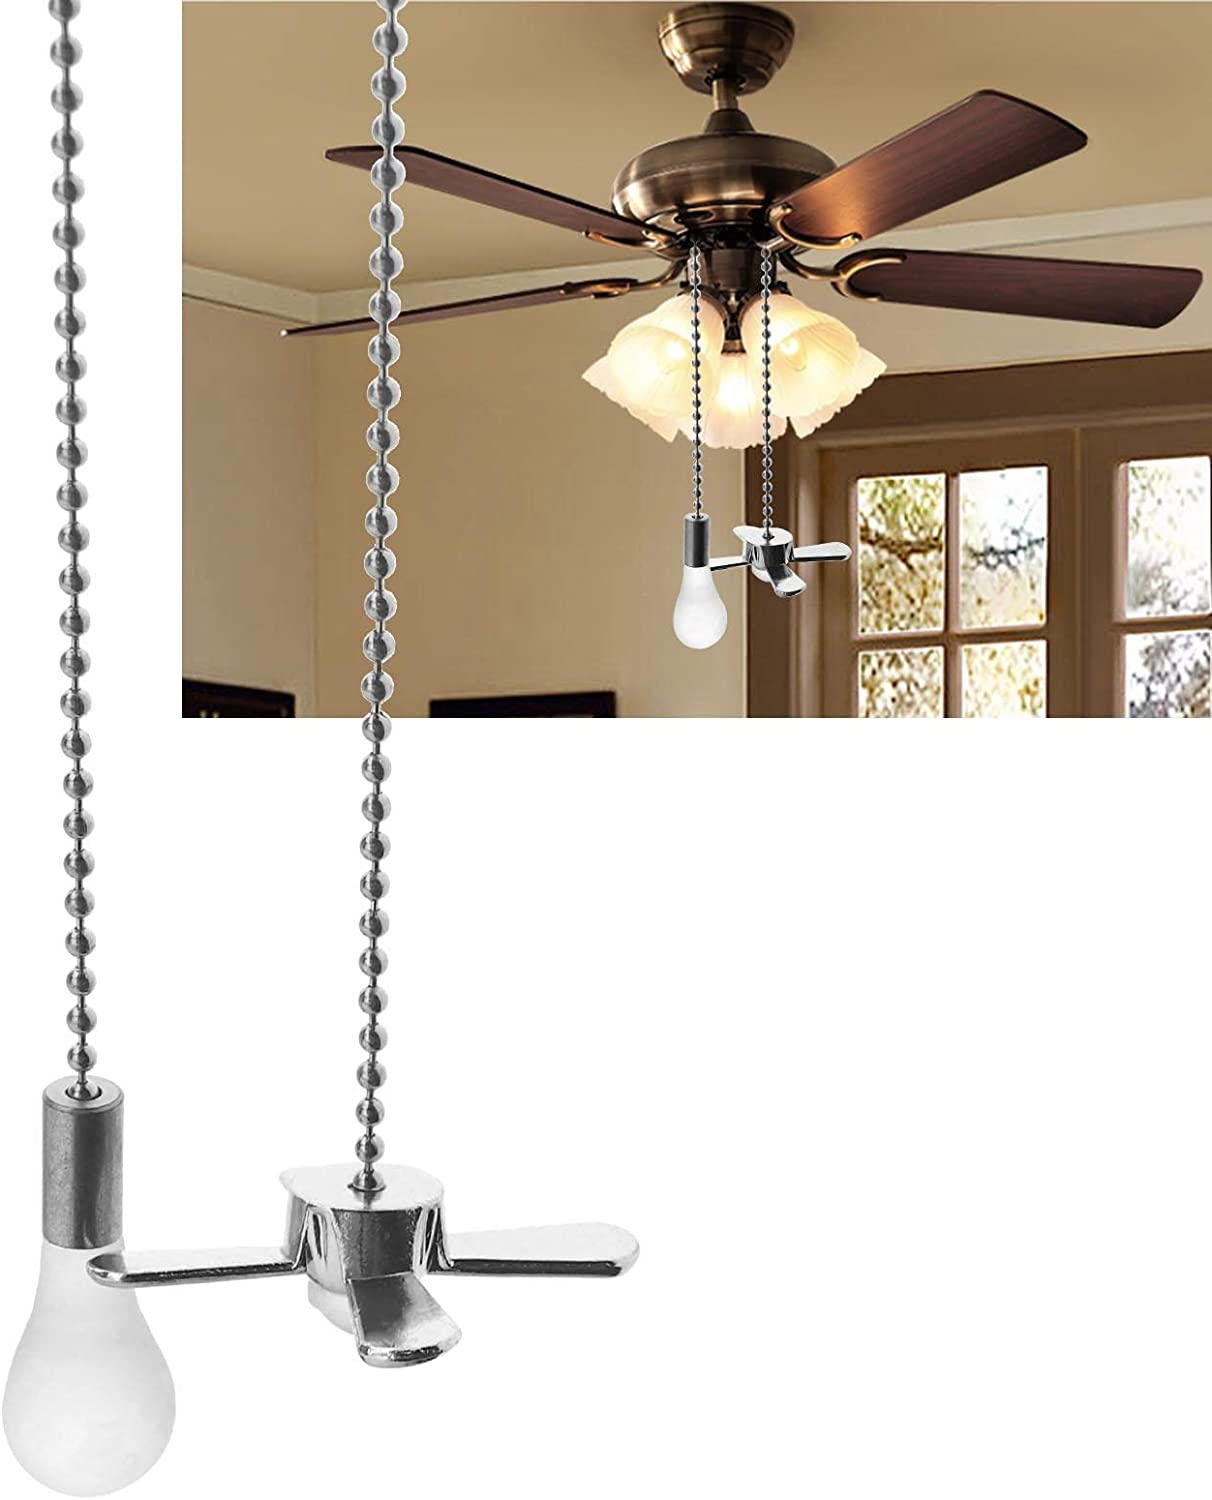 YINETTECH 2pcs Metal Beaded Pull Chain Ball 30CM Chain Extension with Mini Fan Bulb Pendant For Ceiling Fans Lights Gold